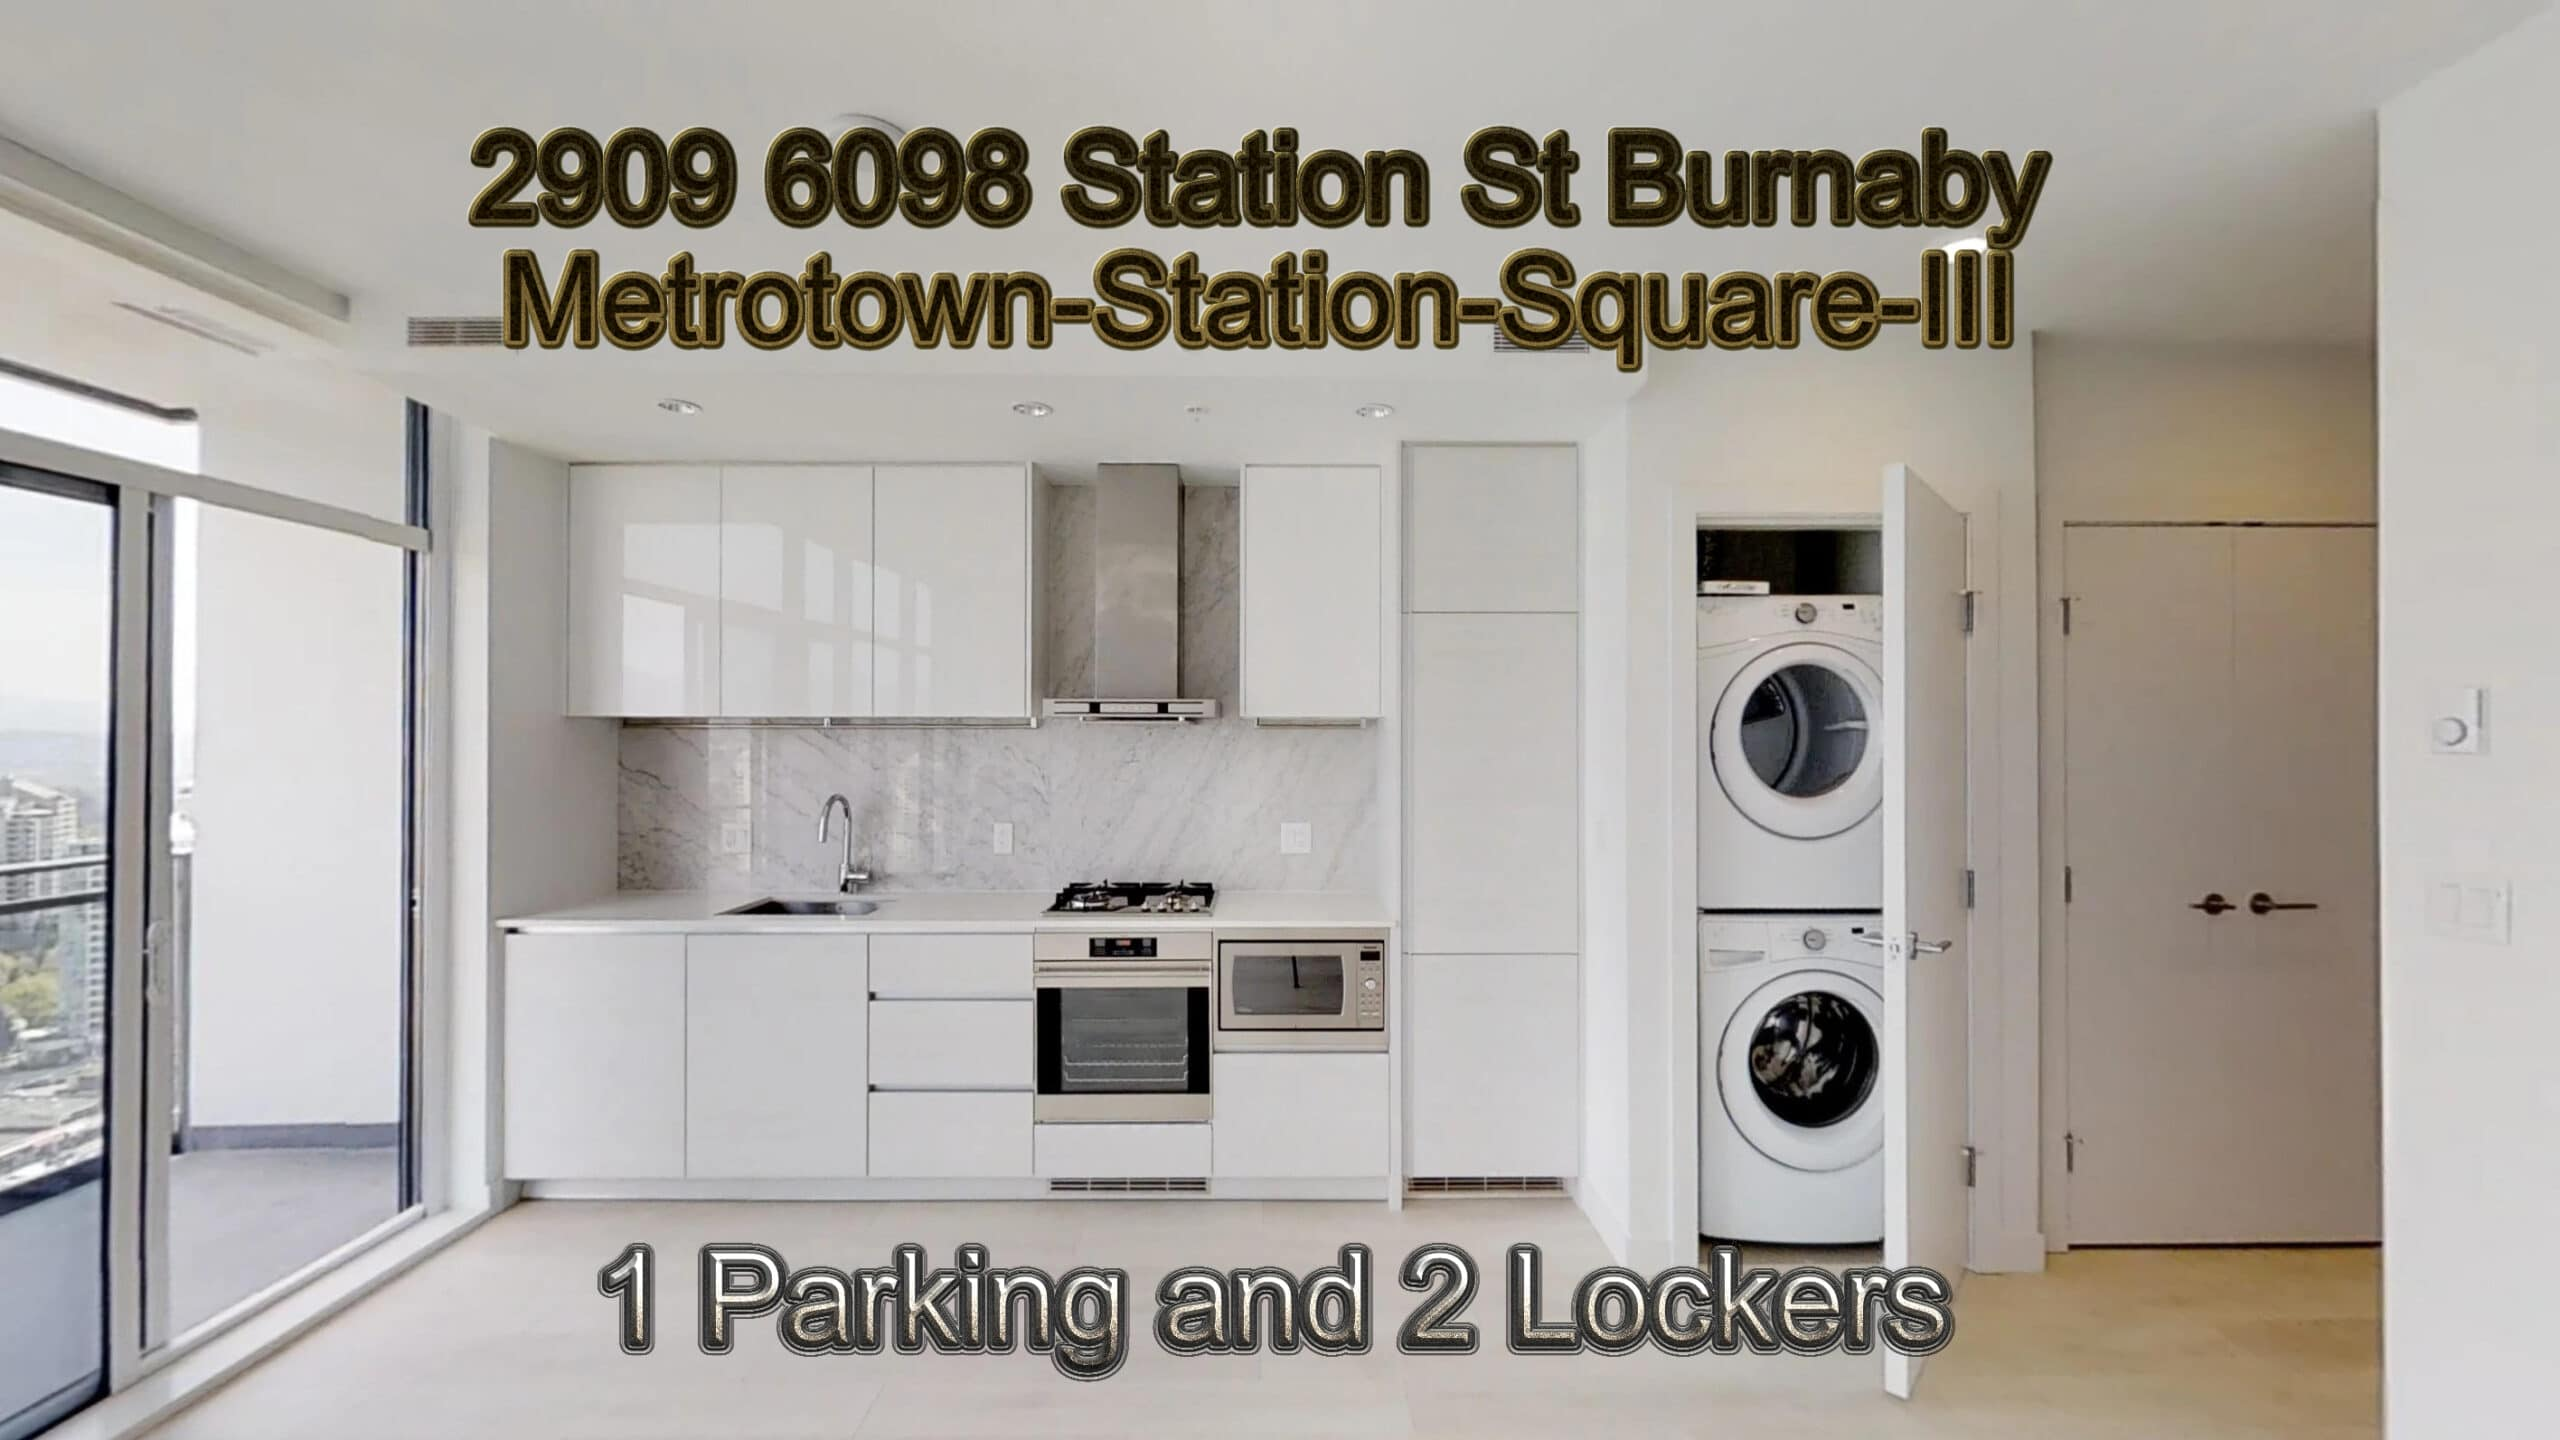 2909-6098-Station-St-Burnaby-Metrotown-Station-Square-III-for-Rent-05012019_224037 copy